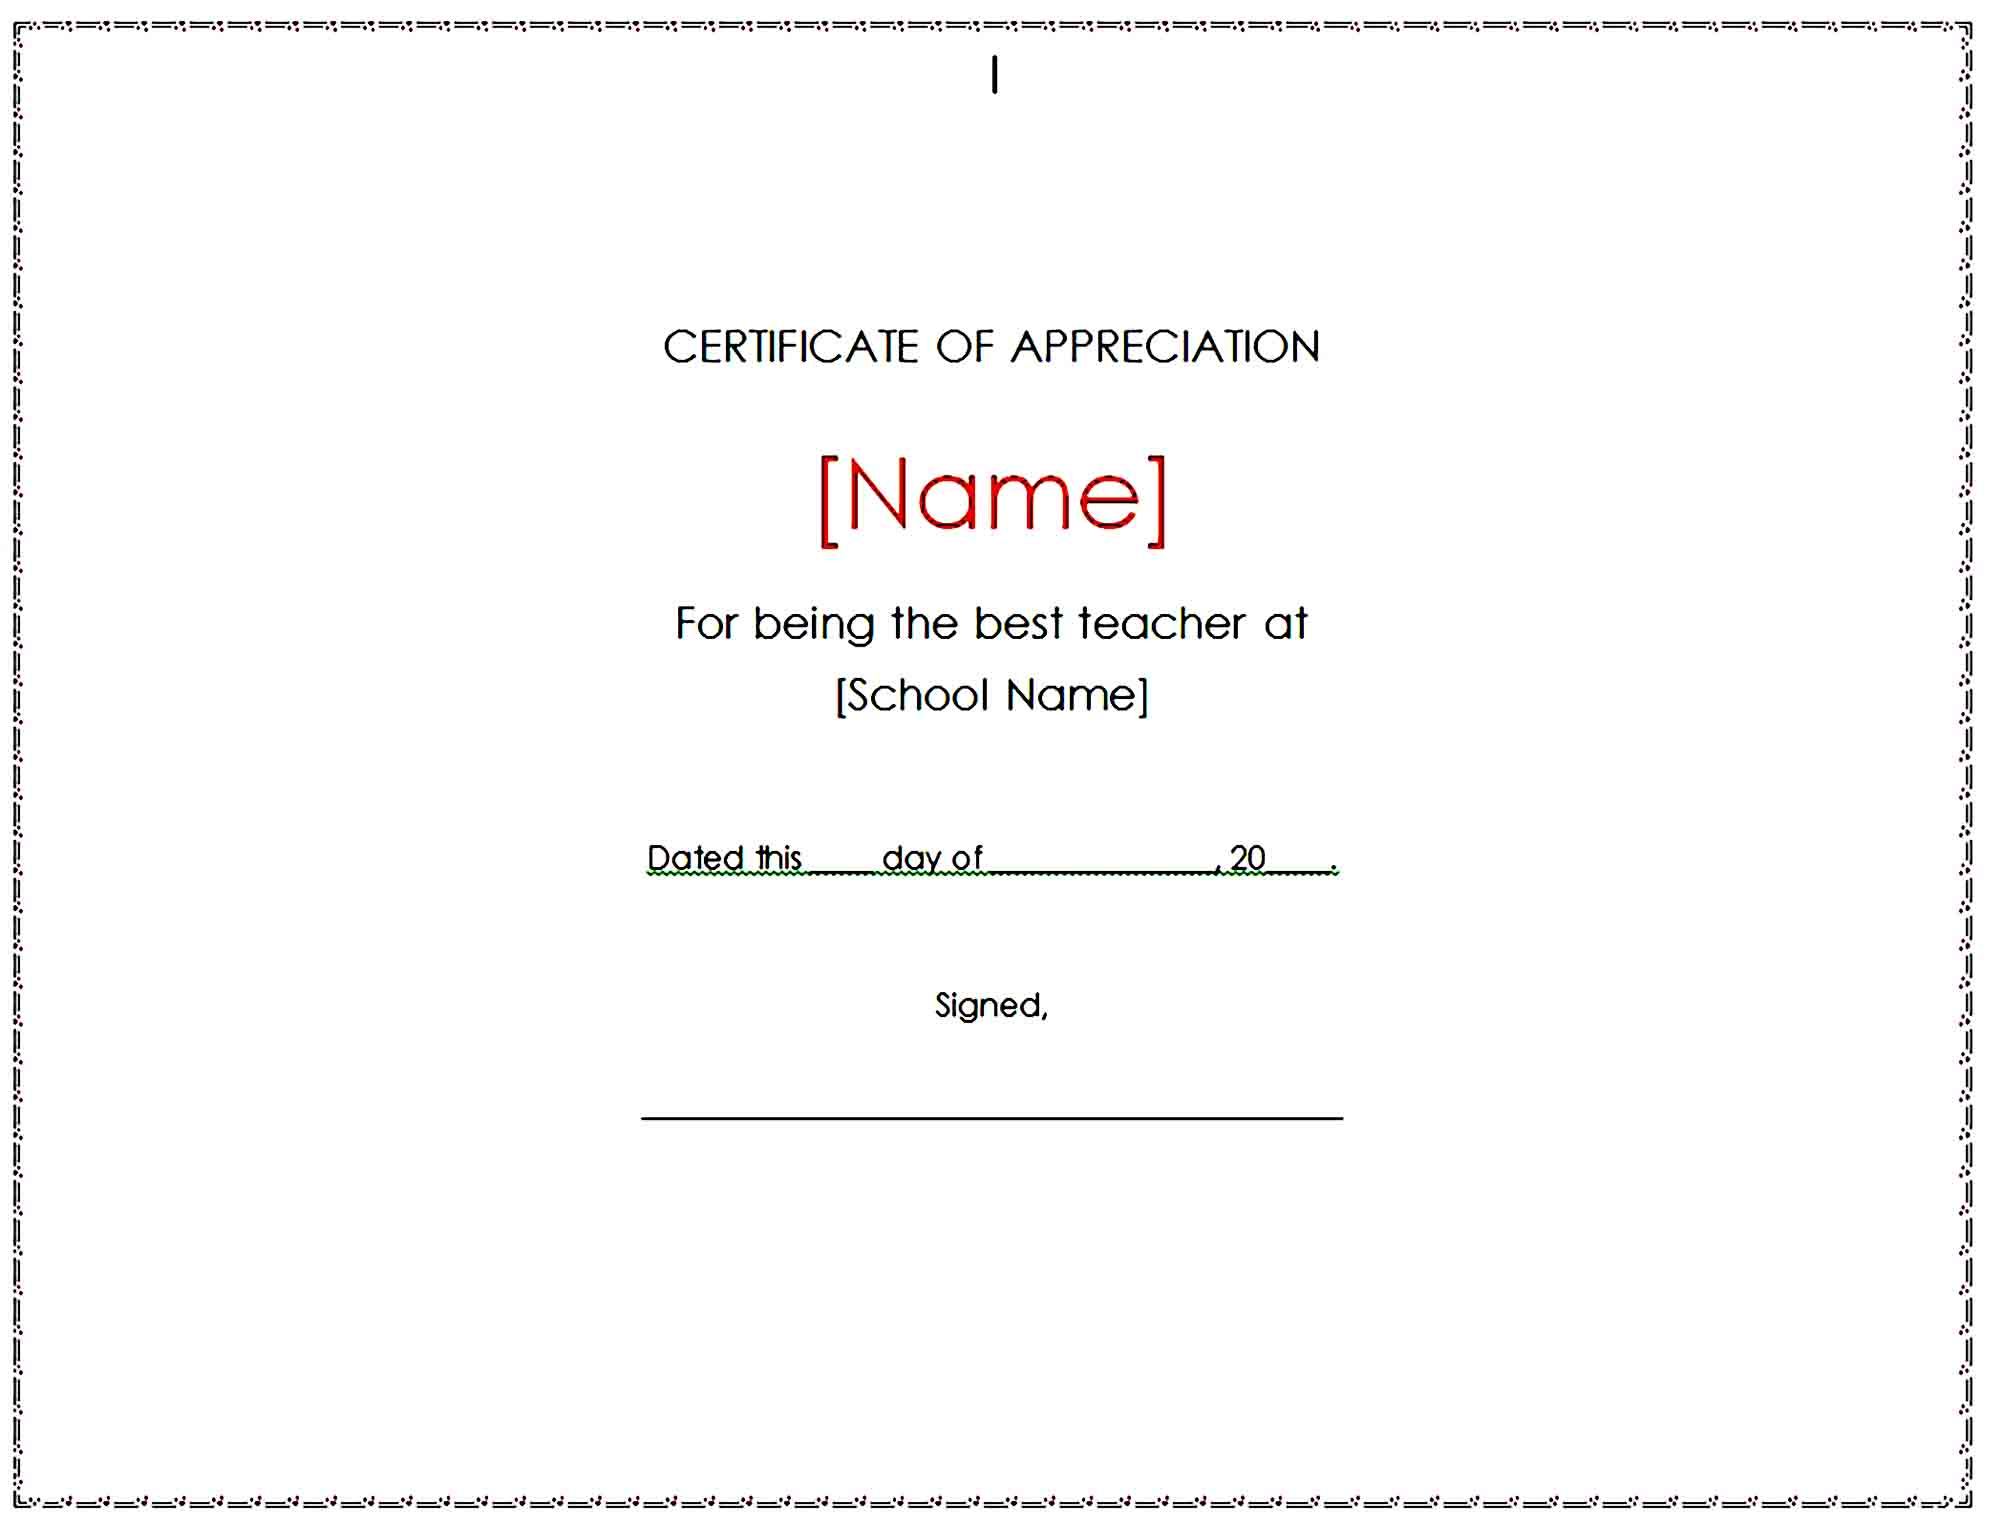 Certificate of Appreciation 09